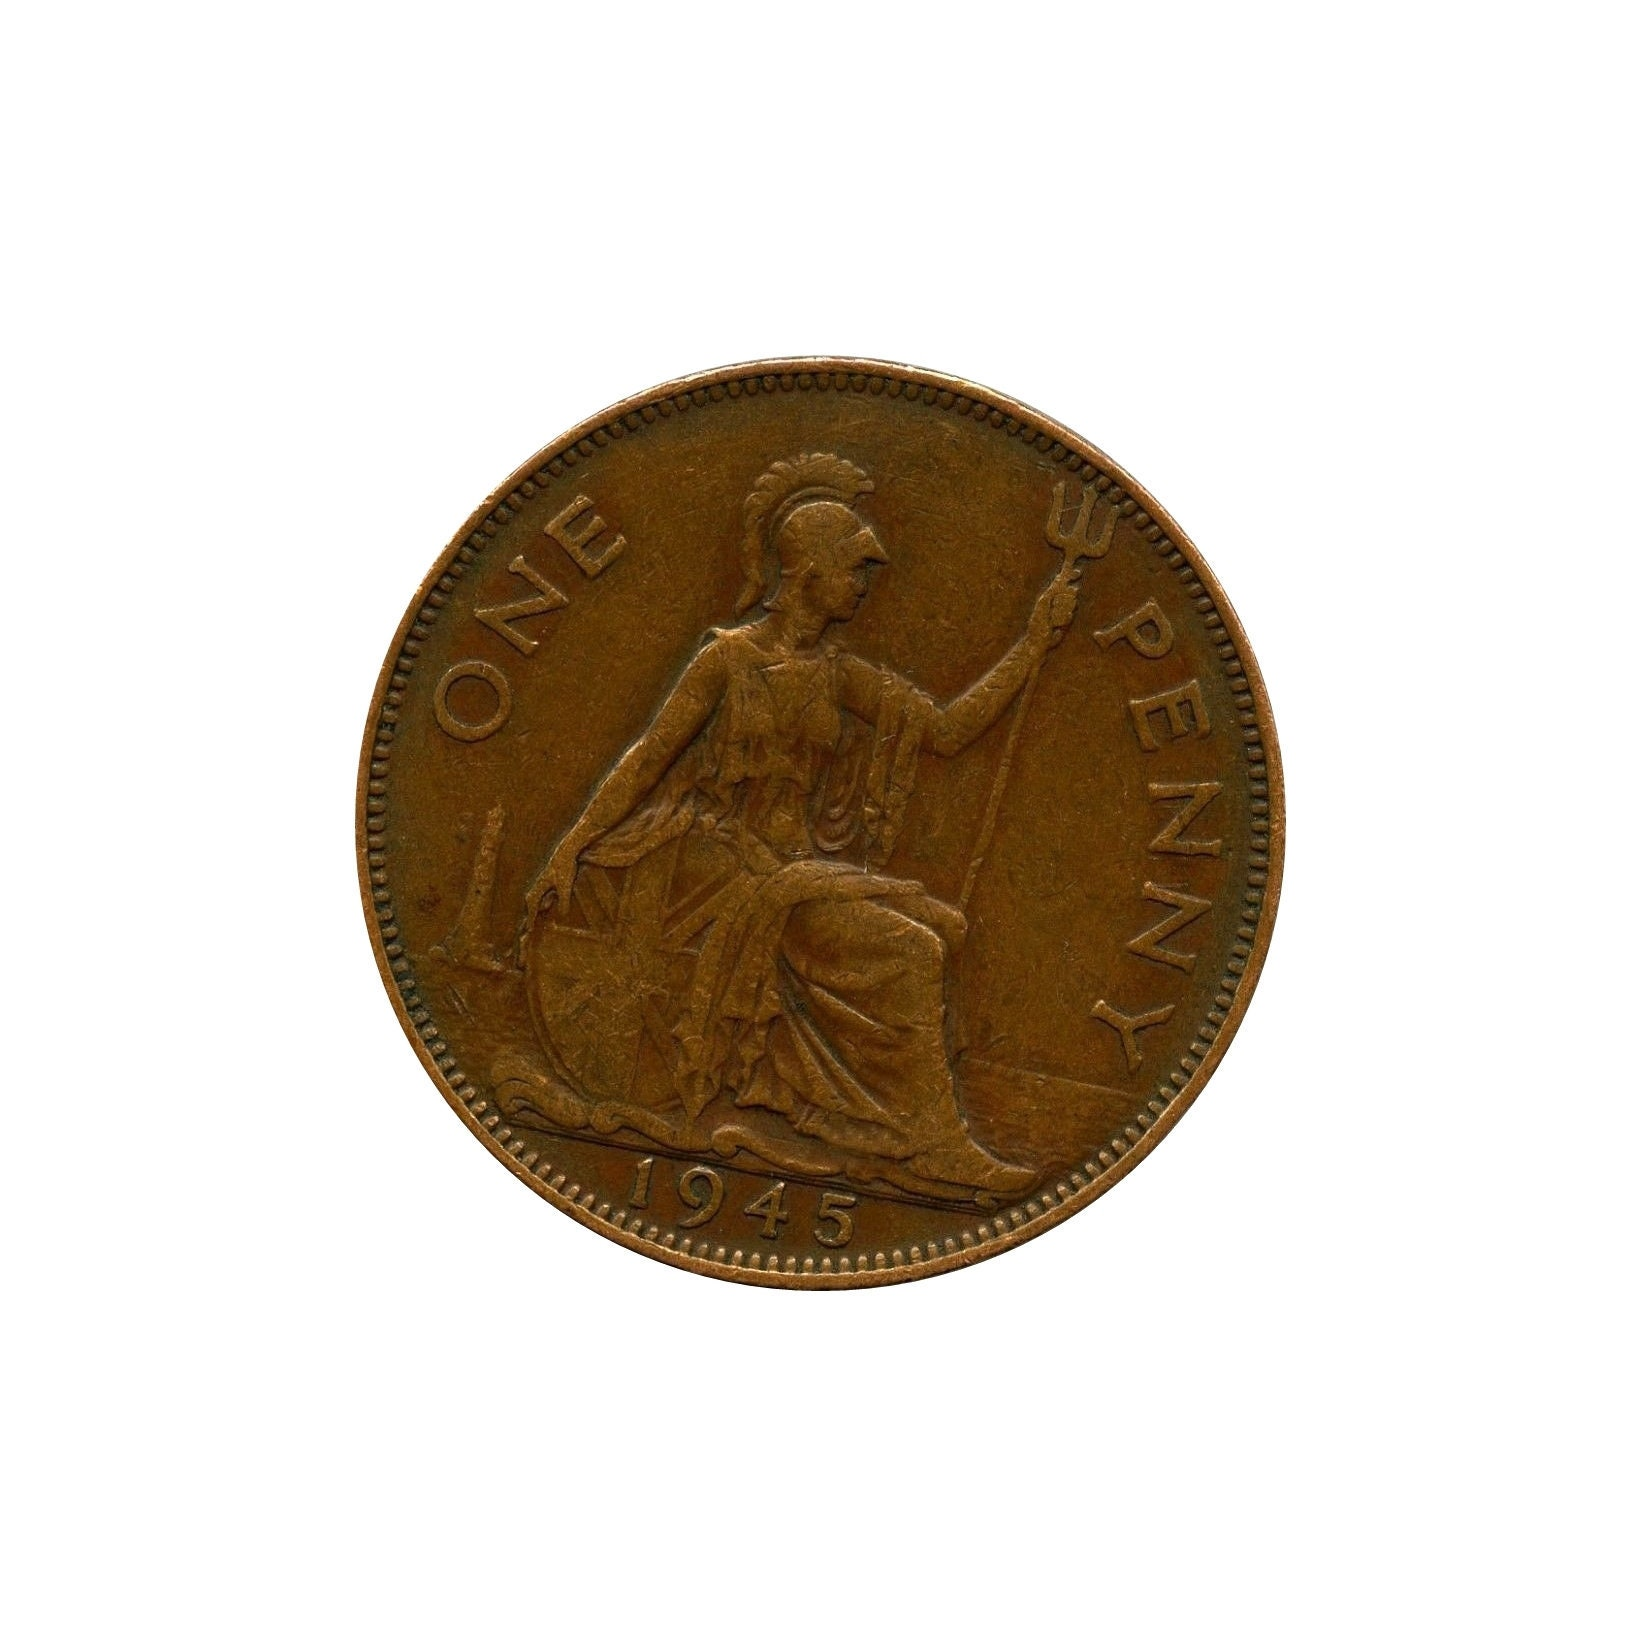 1945 One Penny Coin Great Britain From King George VI , Perfect for  Birthdays ,Anniversary or Craft and Jewellery